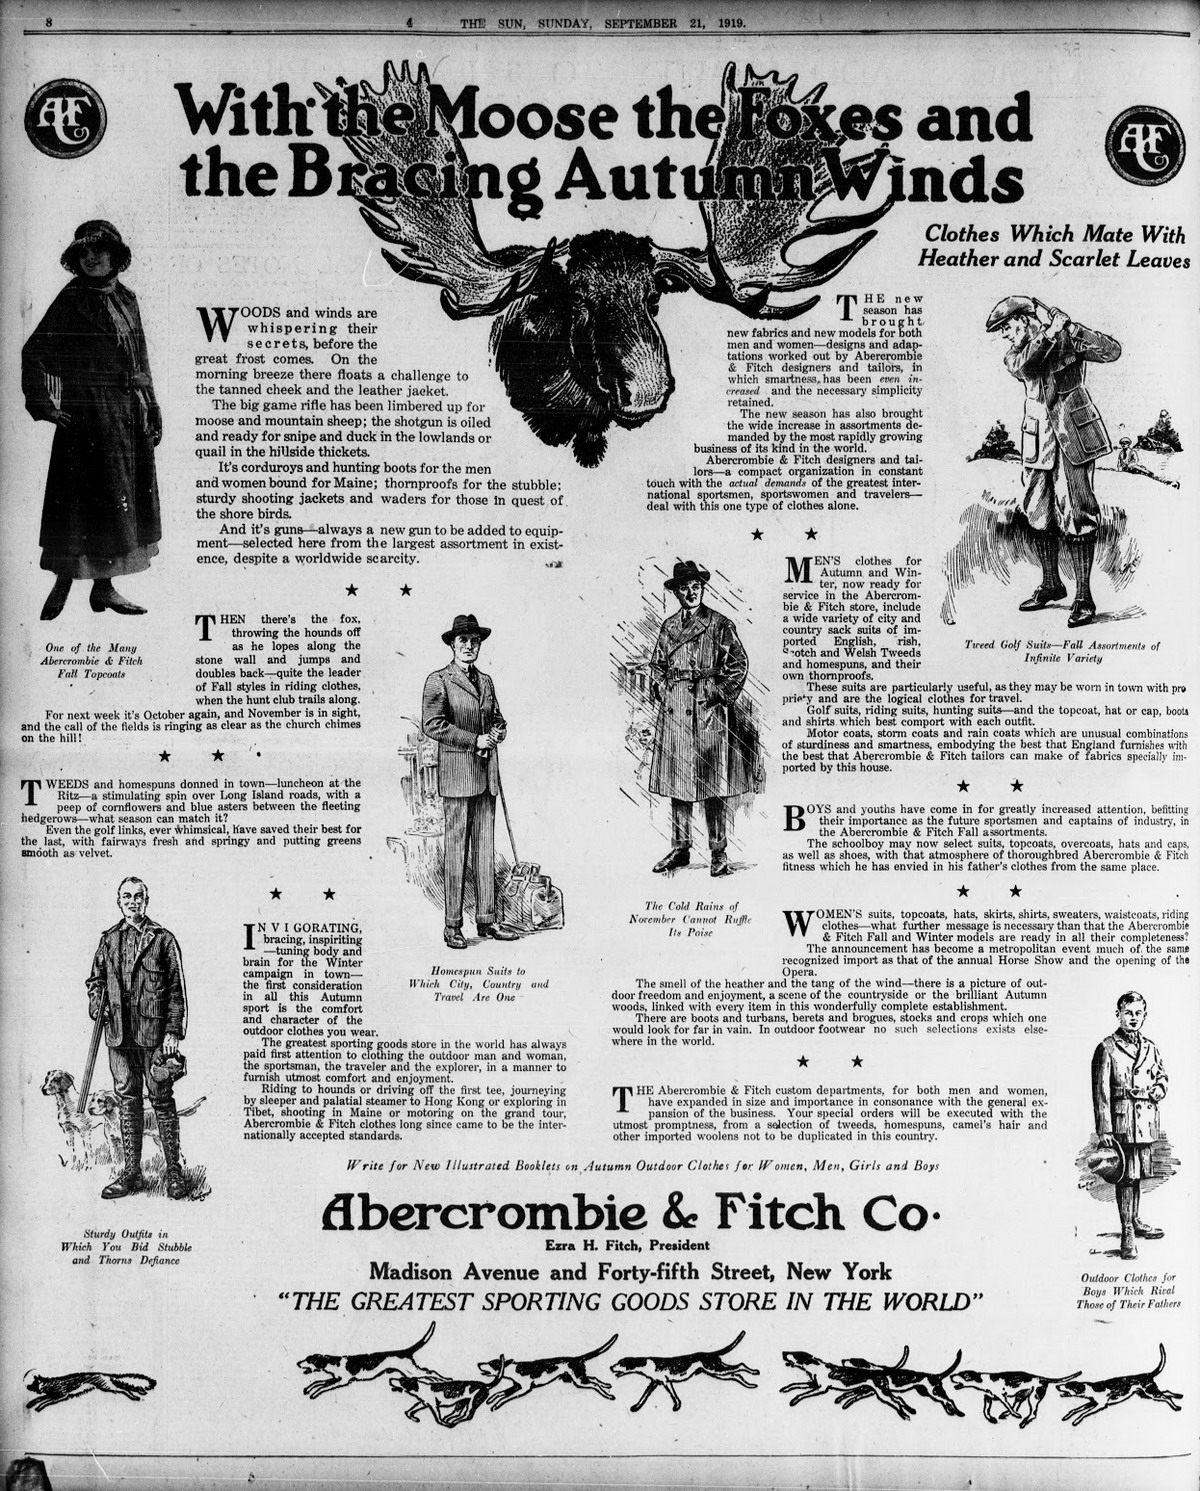 Abercrombie & Fitch Advertisement, 1919